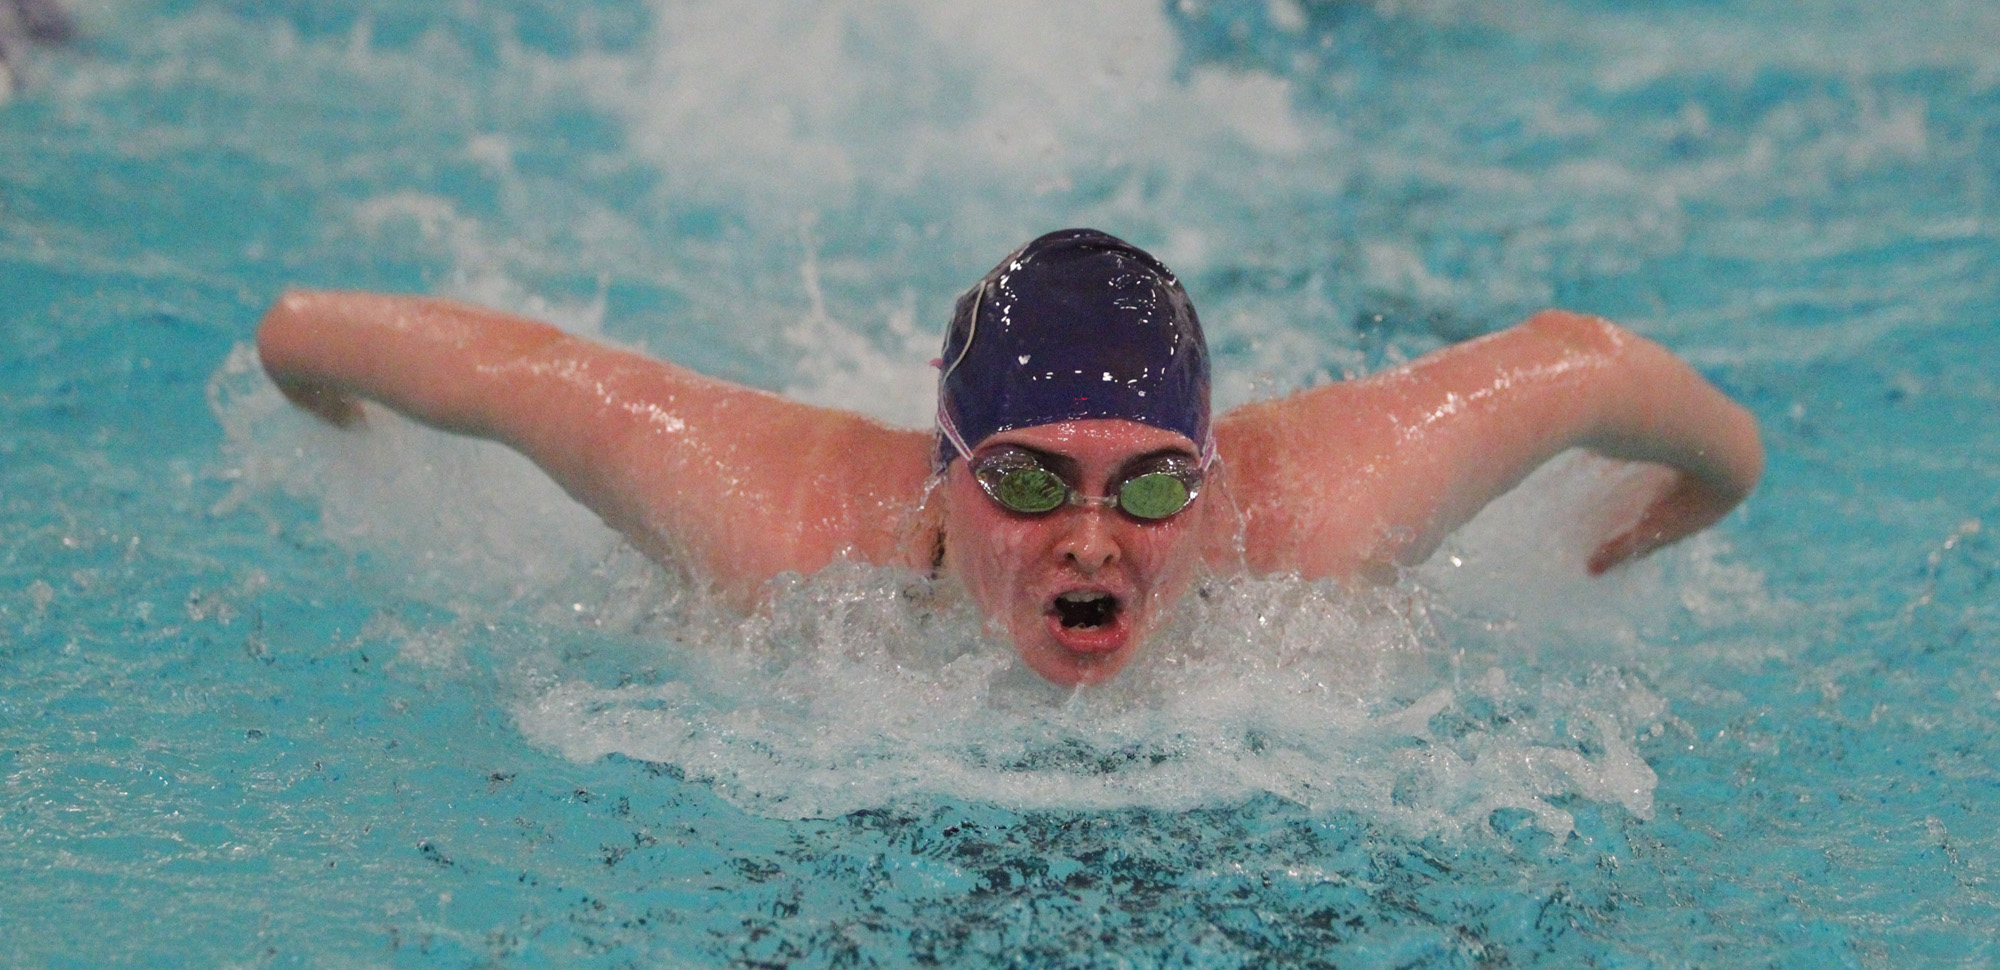 Sophomore Marycate O'Sullivan helped Scranton win a relay event, then won two individual events of her own to help the Royals win dual meets over Misericordia and Marywood on Friday evening.